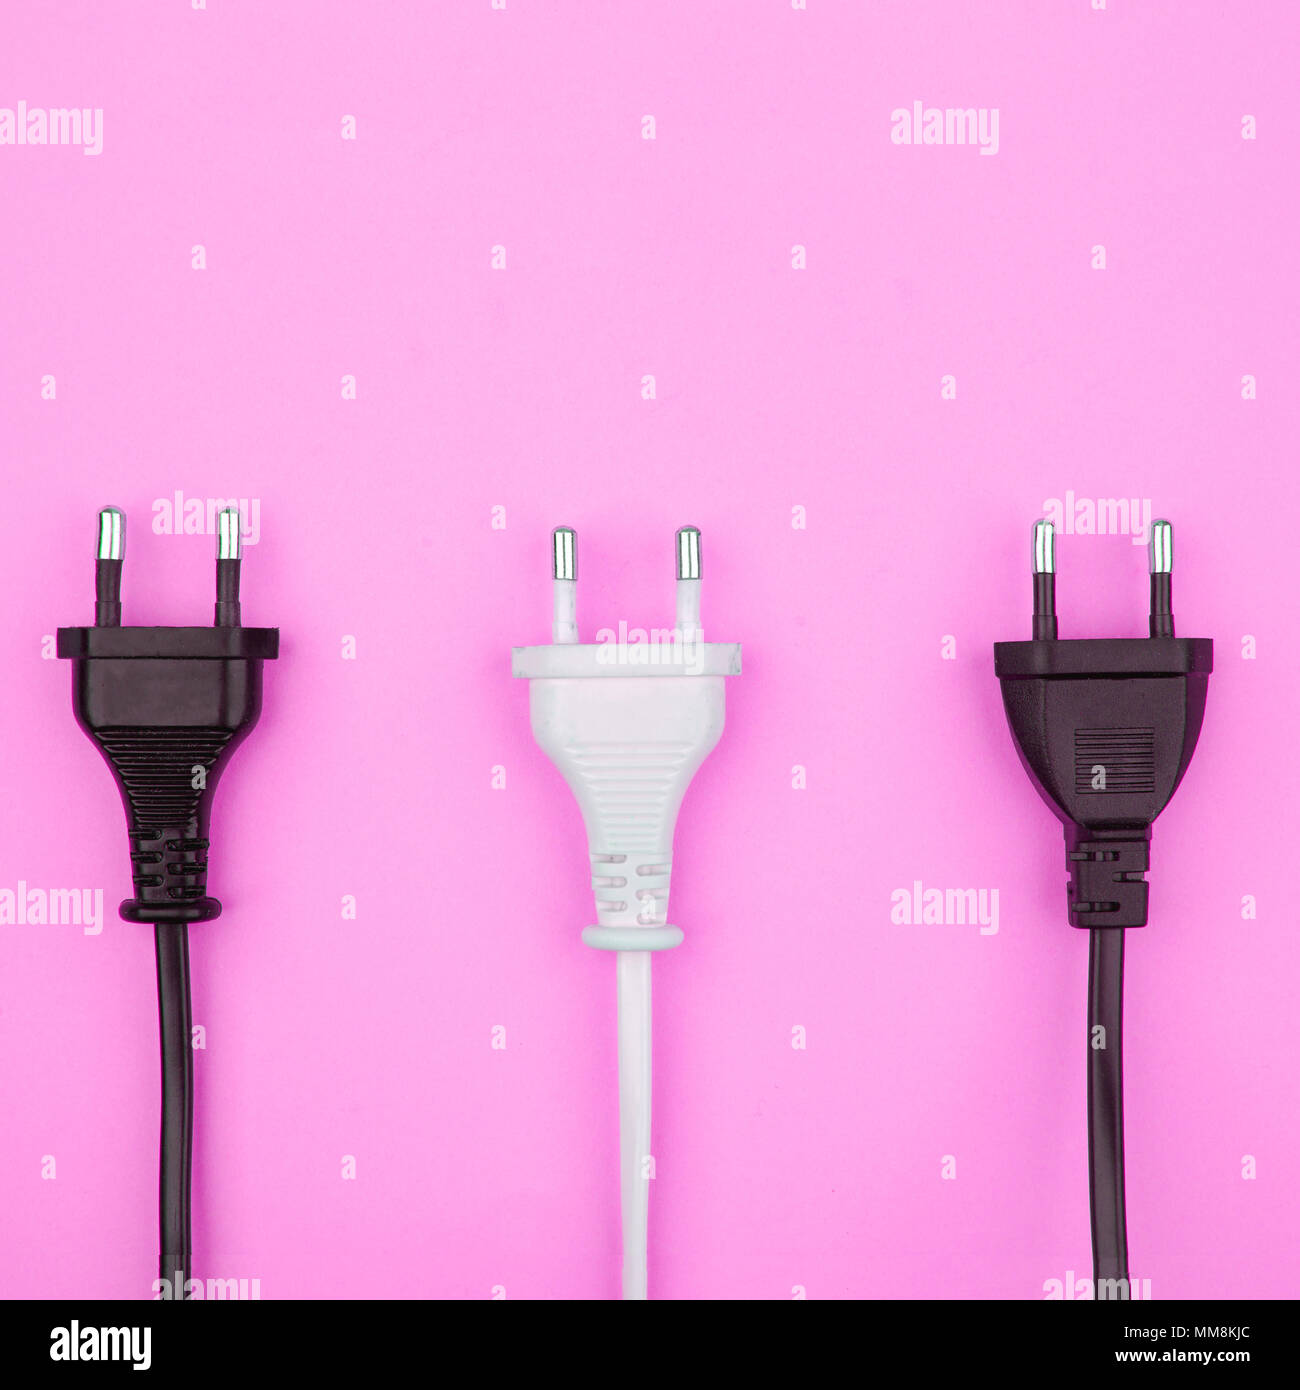 Trendy flat lay minimal concept, unplugged cord on pink background - Stock Image